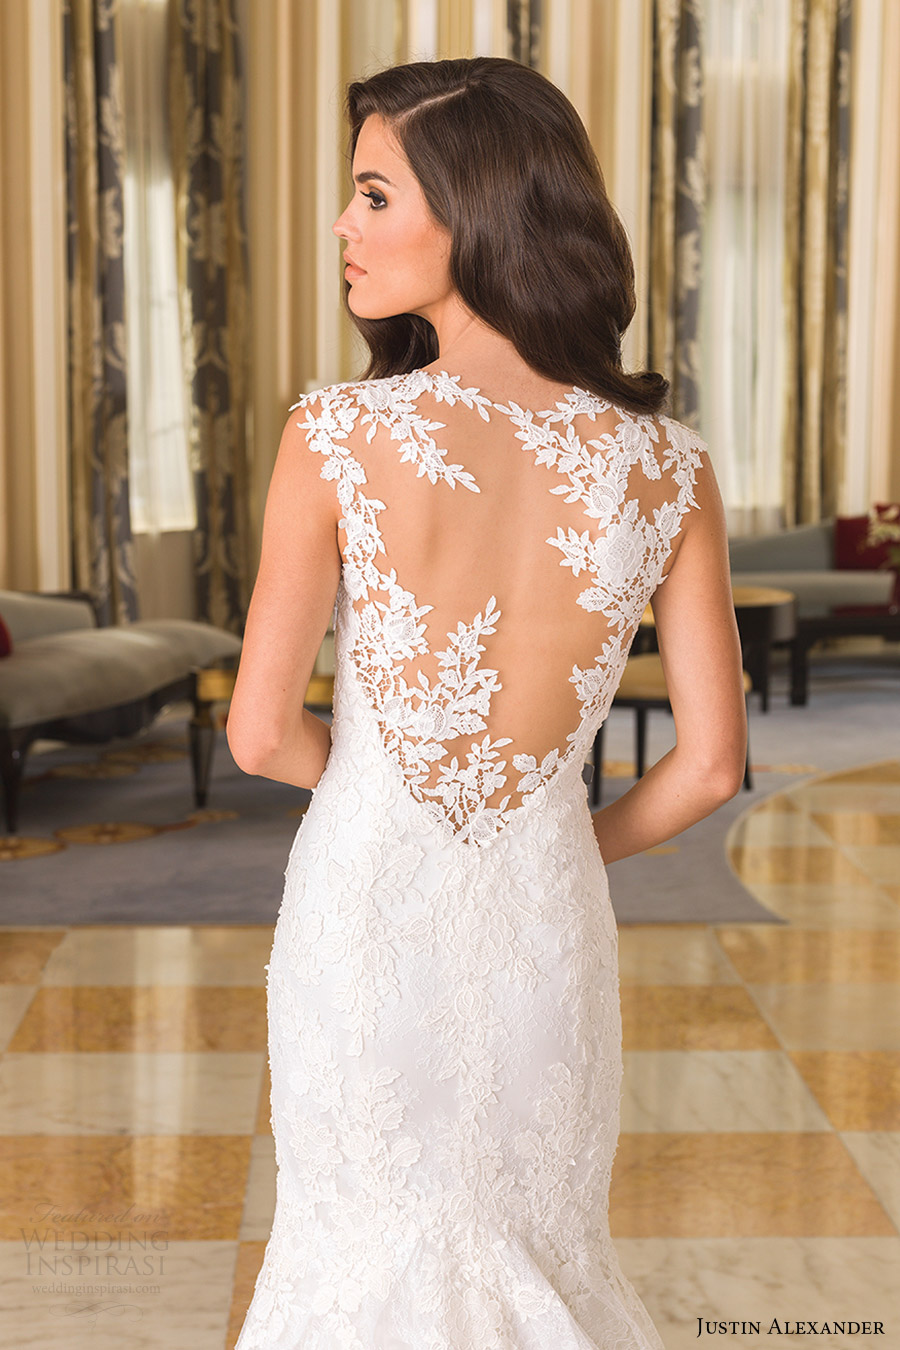 justin alexander bridal fall 2016 cap sleeves vneck fit flare chantilly lace wedding dress (8858) zbv sheer back train